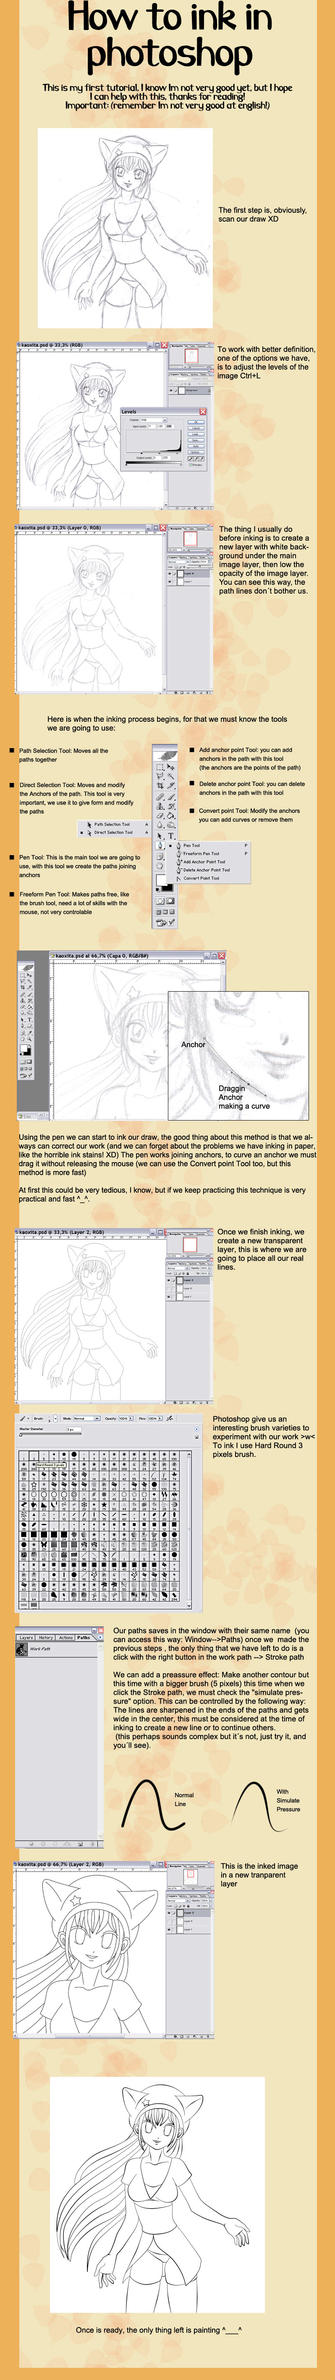 How to ink in photoshop tut. by Bastet-sama